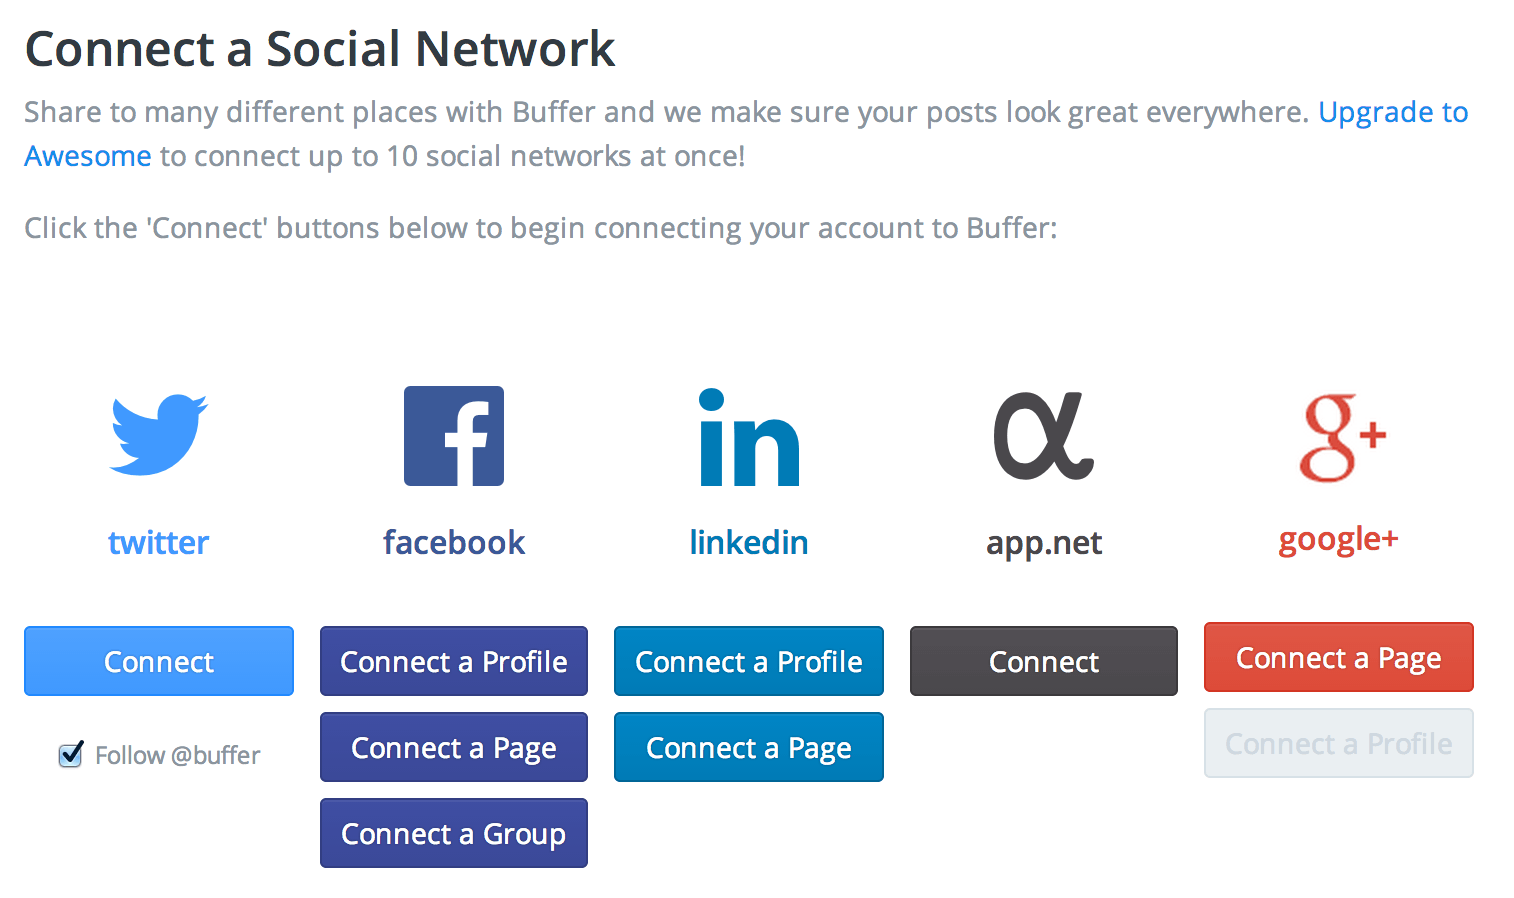 Connect a Social Media - BufferApp